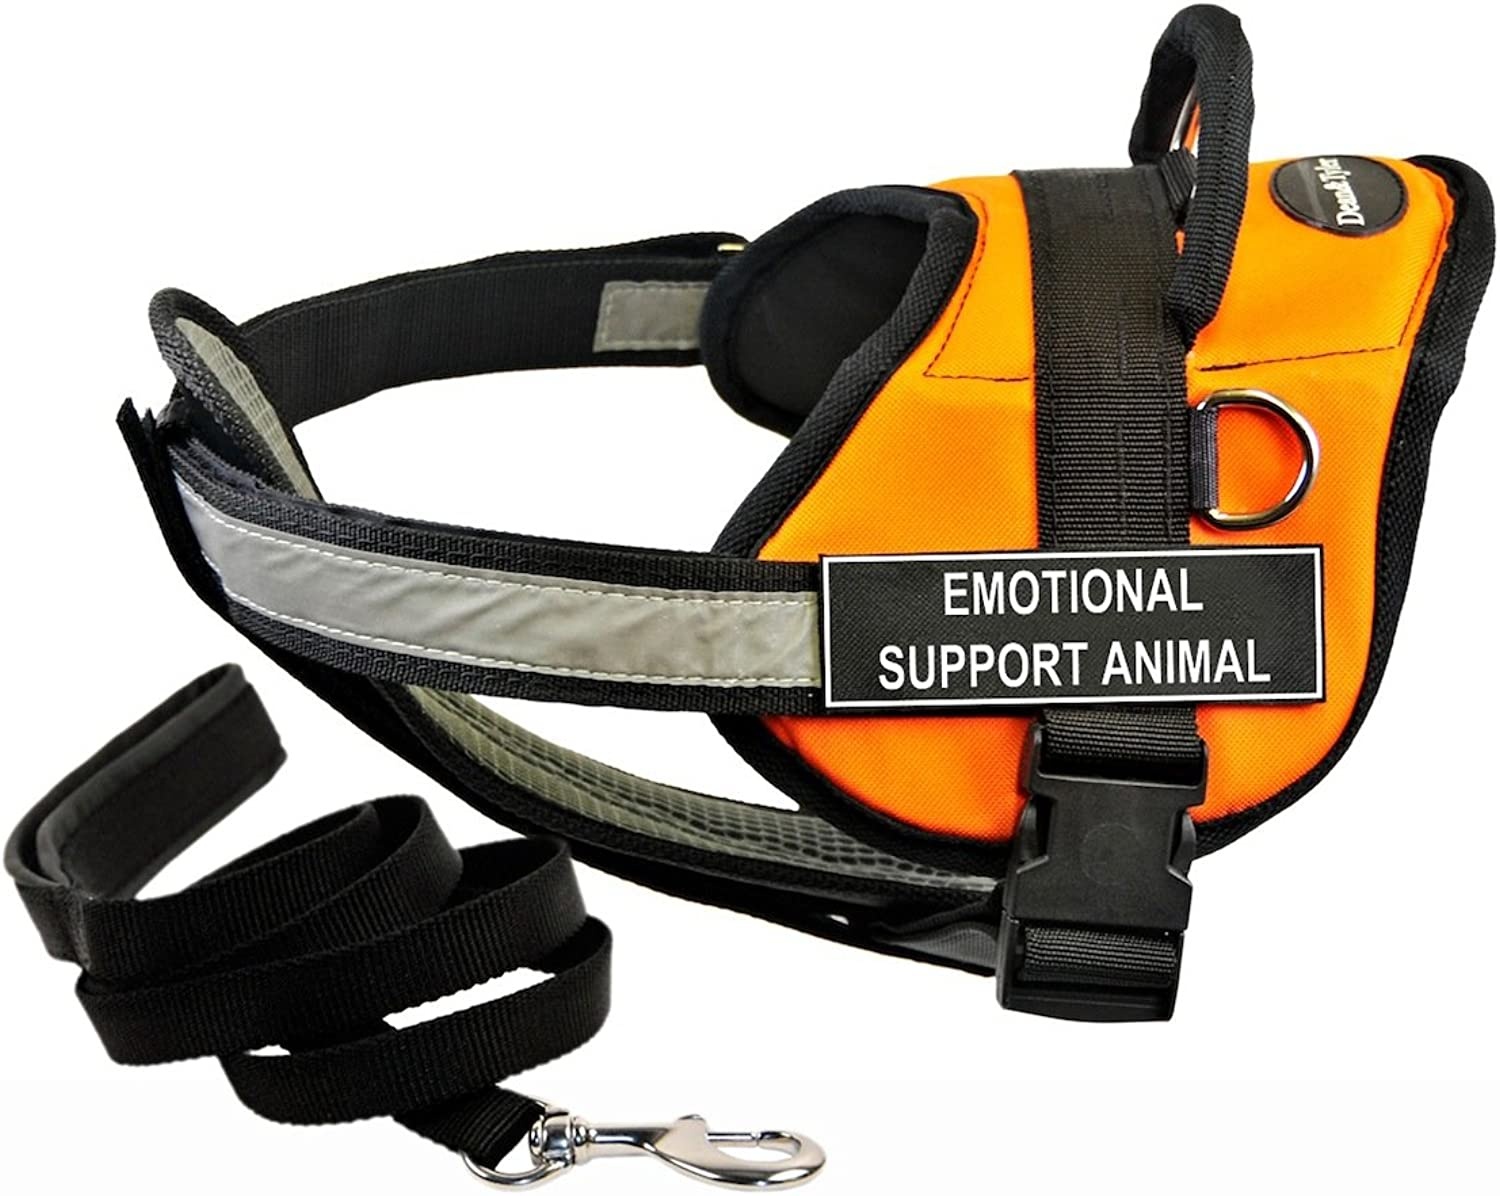 Dean & Tyler DT Works orange EMOTIONAL SUPPORT ANIMAL Harness with Chest Padding, XSmall, and Black 6 ft Padded Puppy Leash.